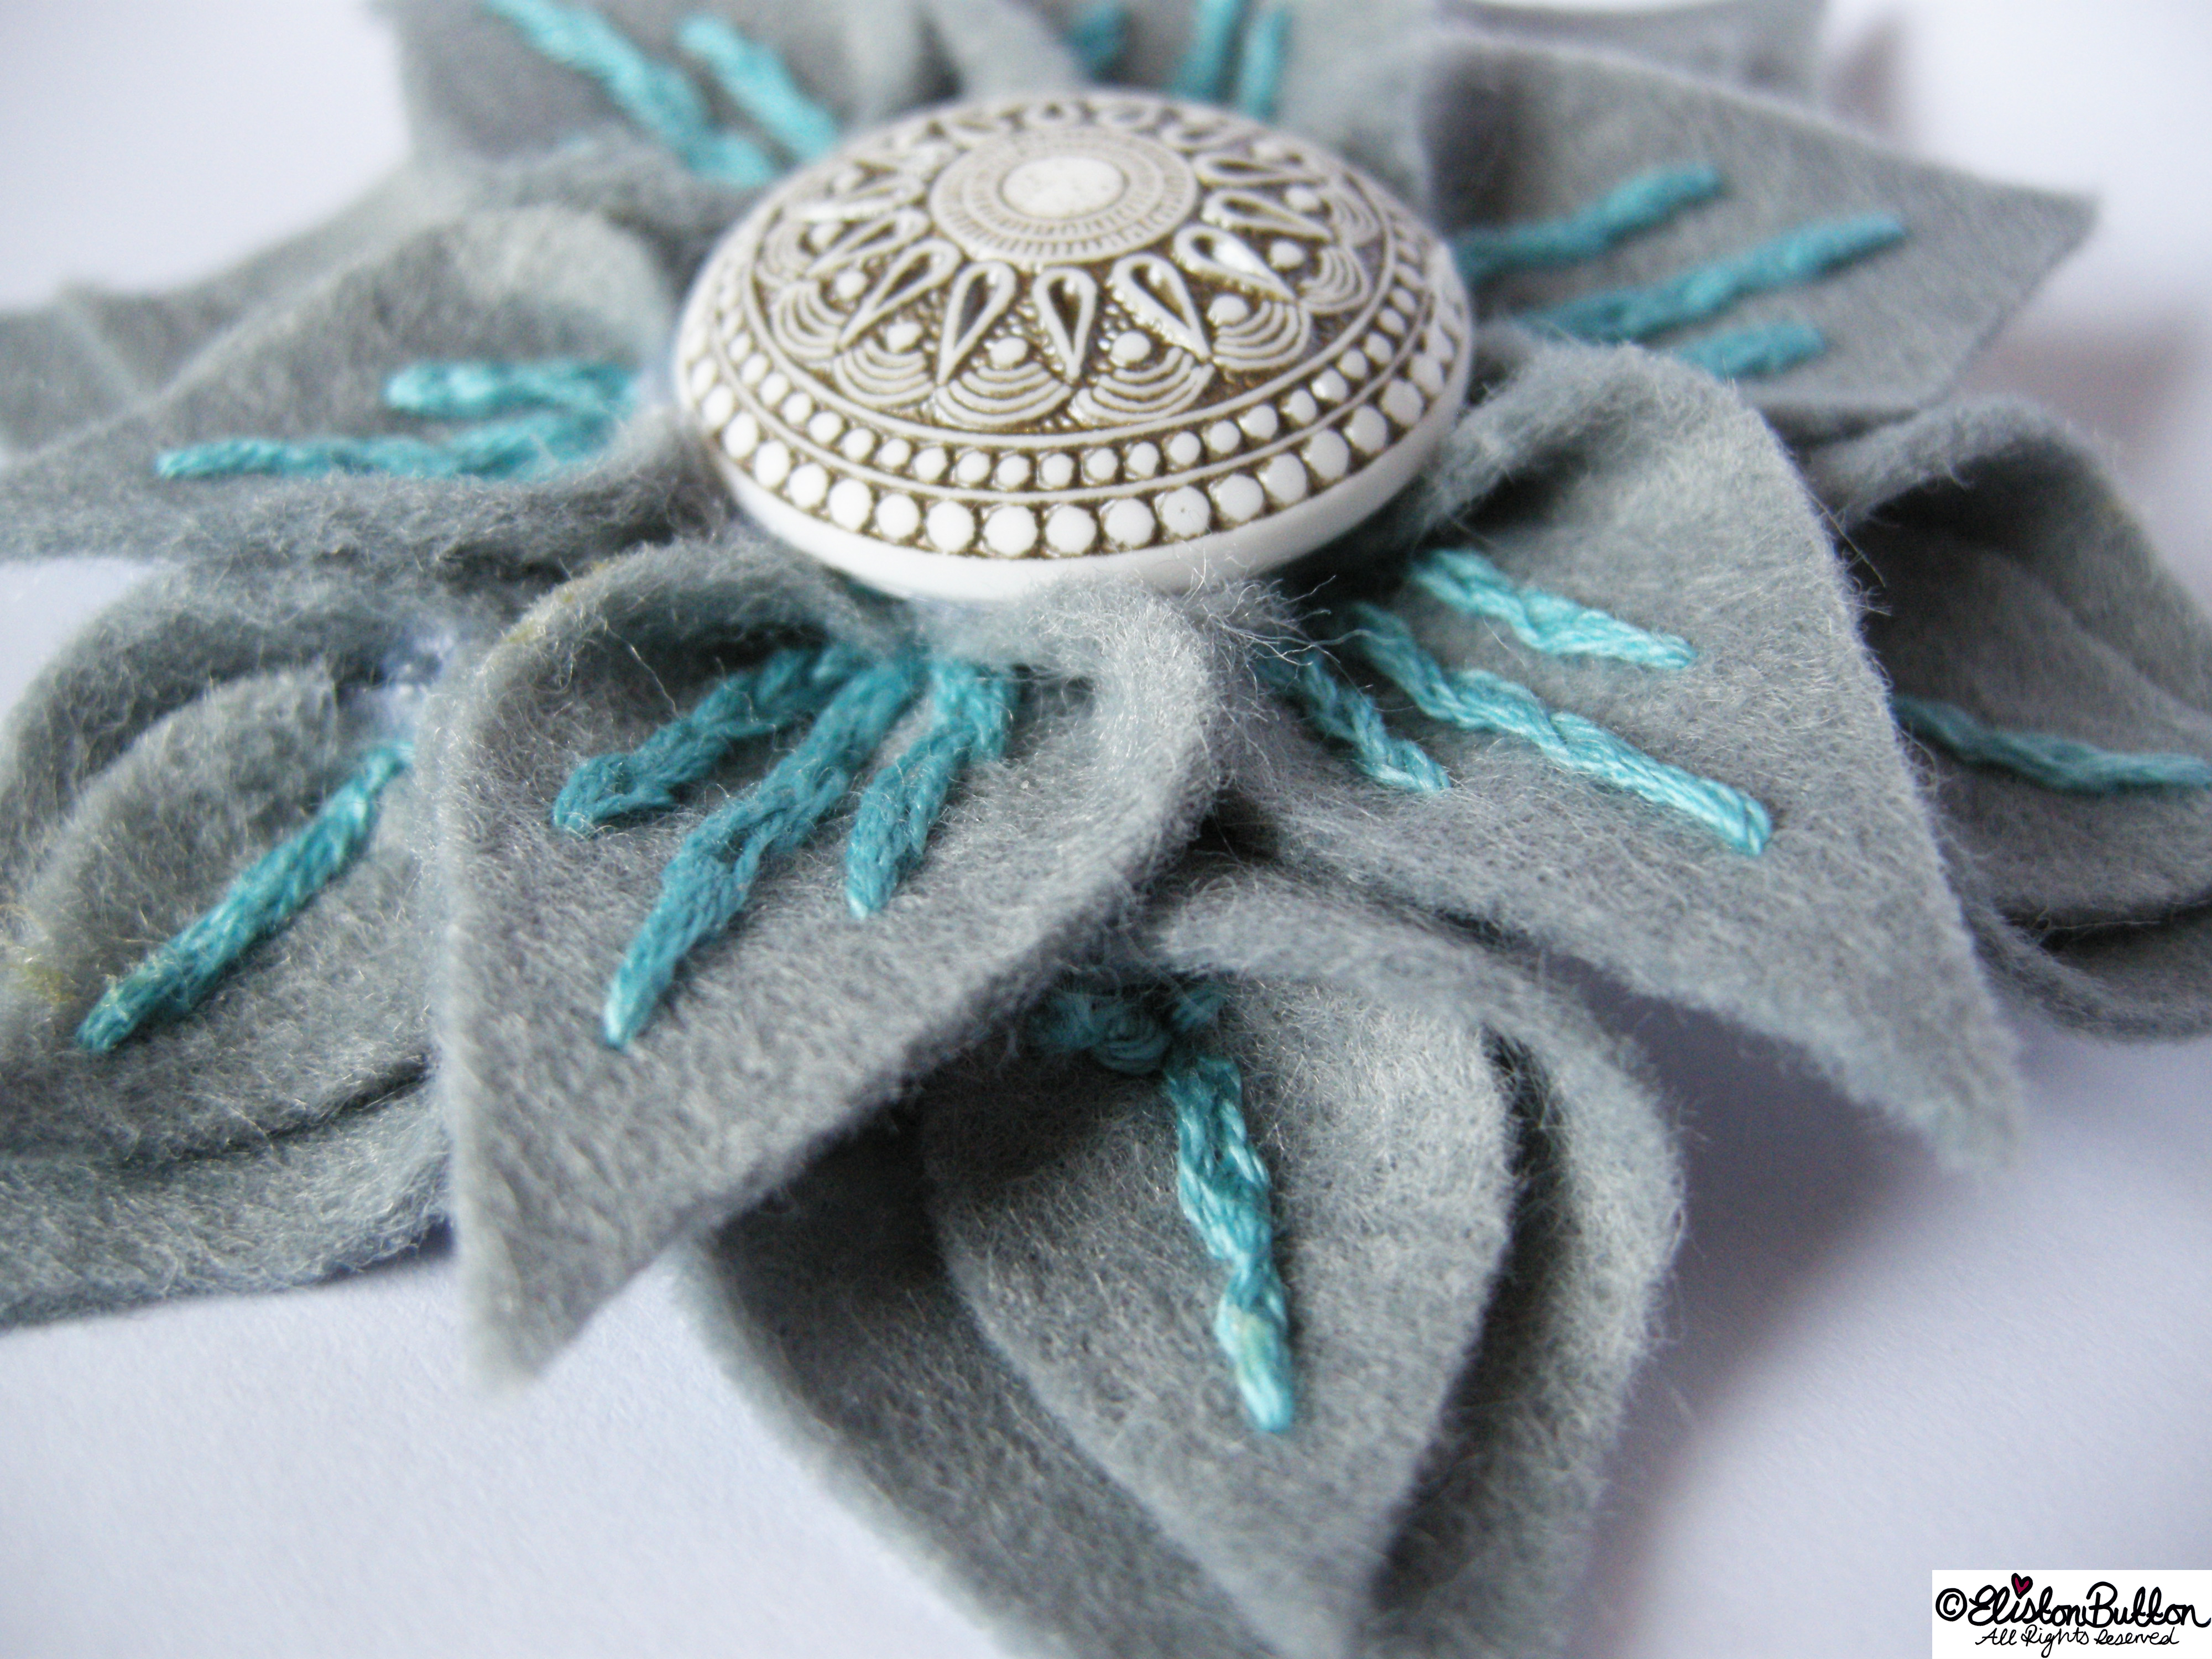 Slate and Seafoam Embroidered Felt Flower Brooch Close Up - 27 Before 27 - Slate and Seafoam at www.elistonbutton.com - Eliston Button - That Crafty Kid – Art, Design, Craft & Adventure.